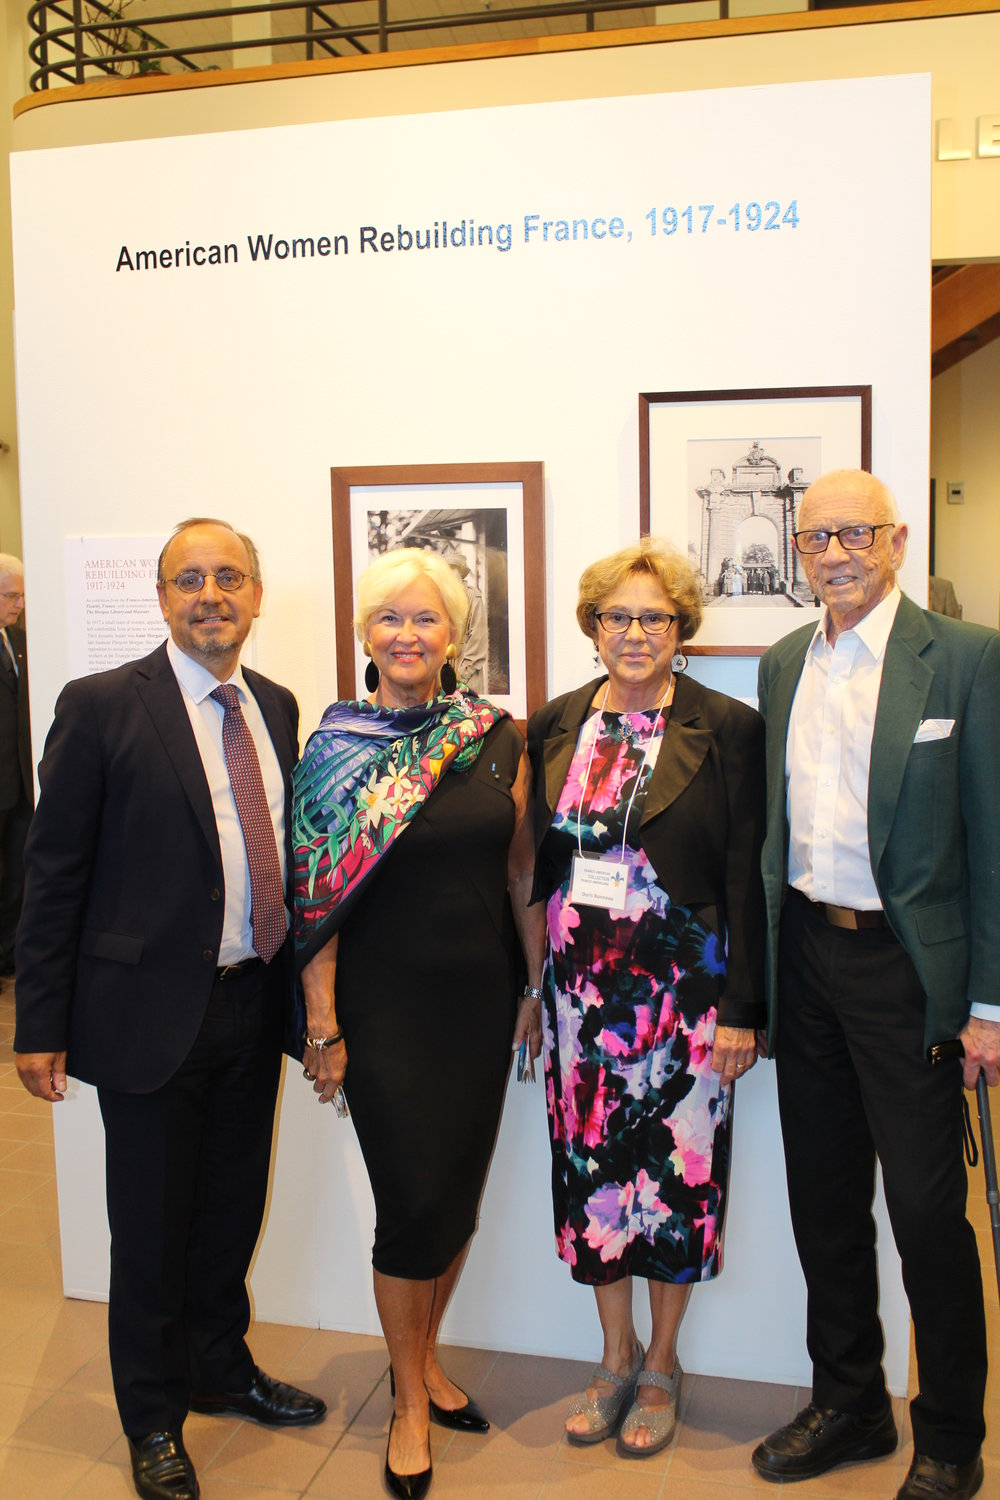 AWRF_USM-OpeningReception_Aug2017_8.jpg